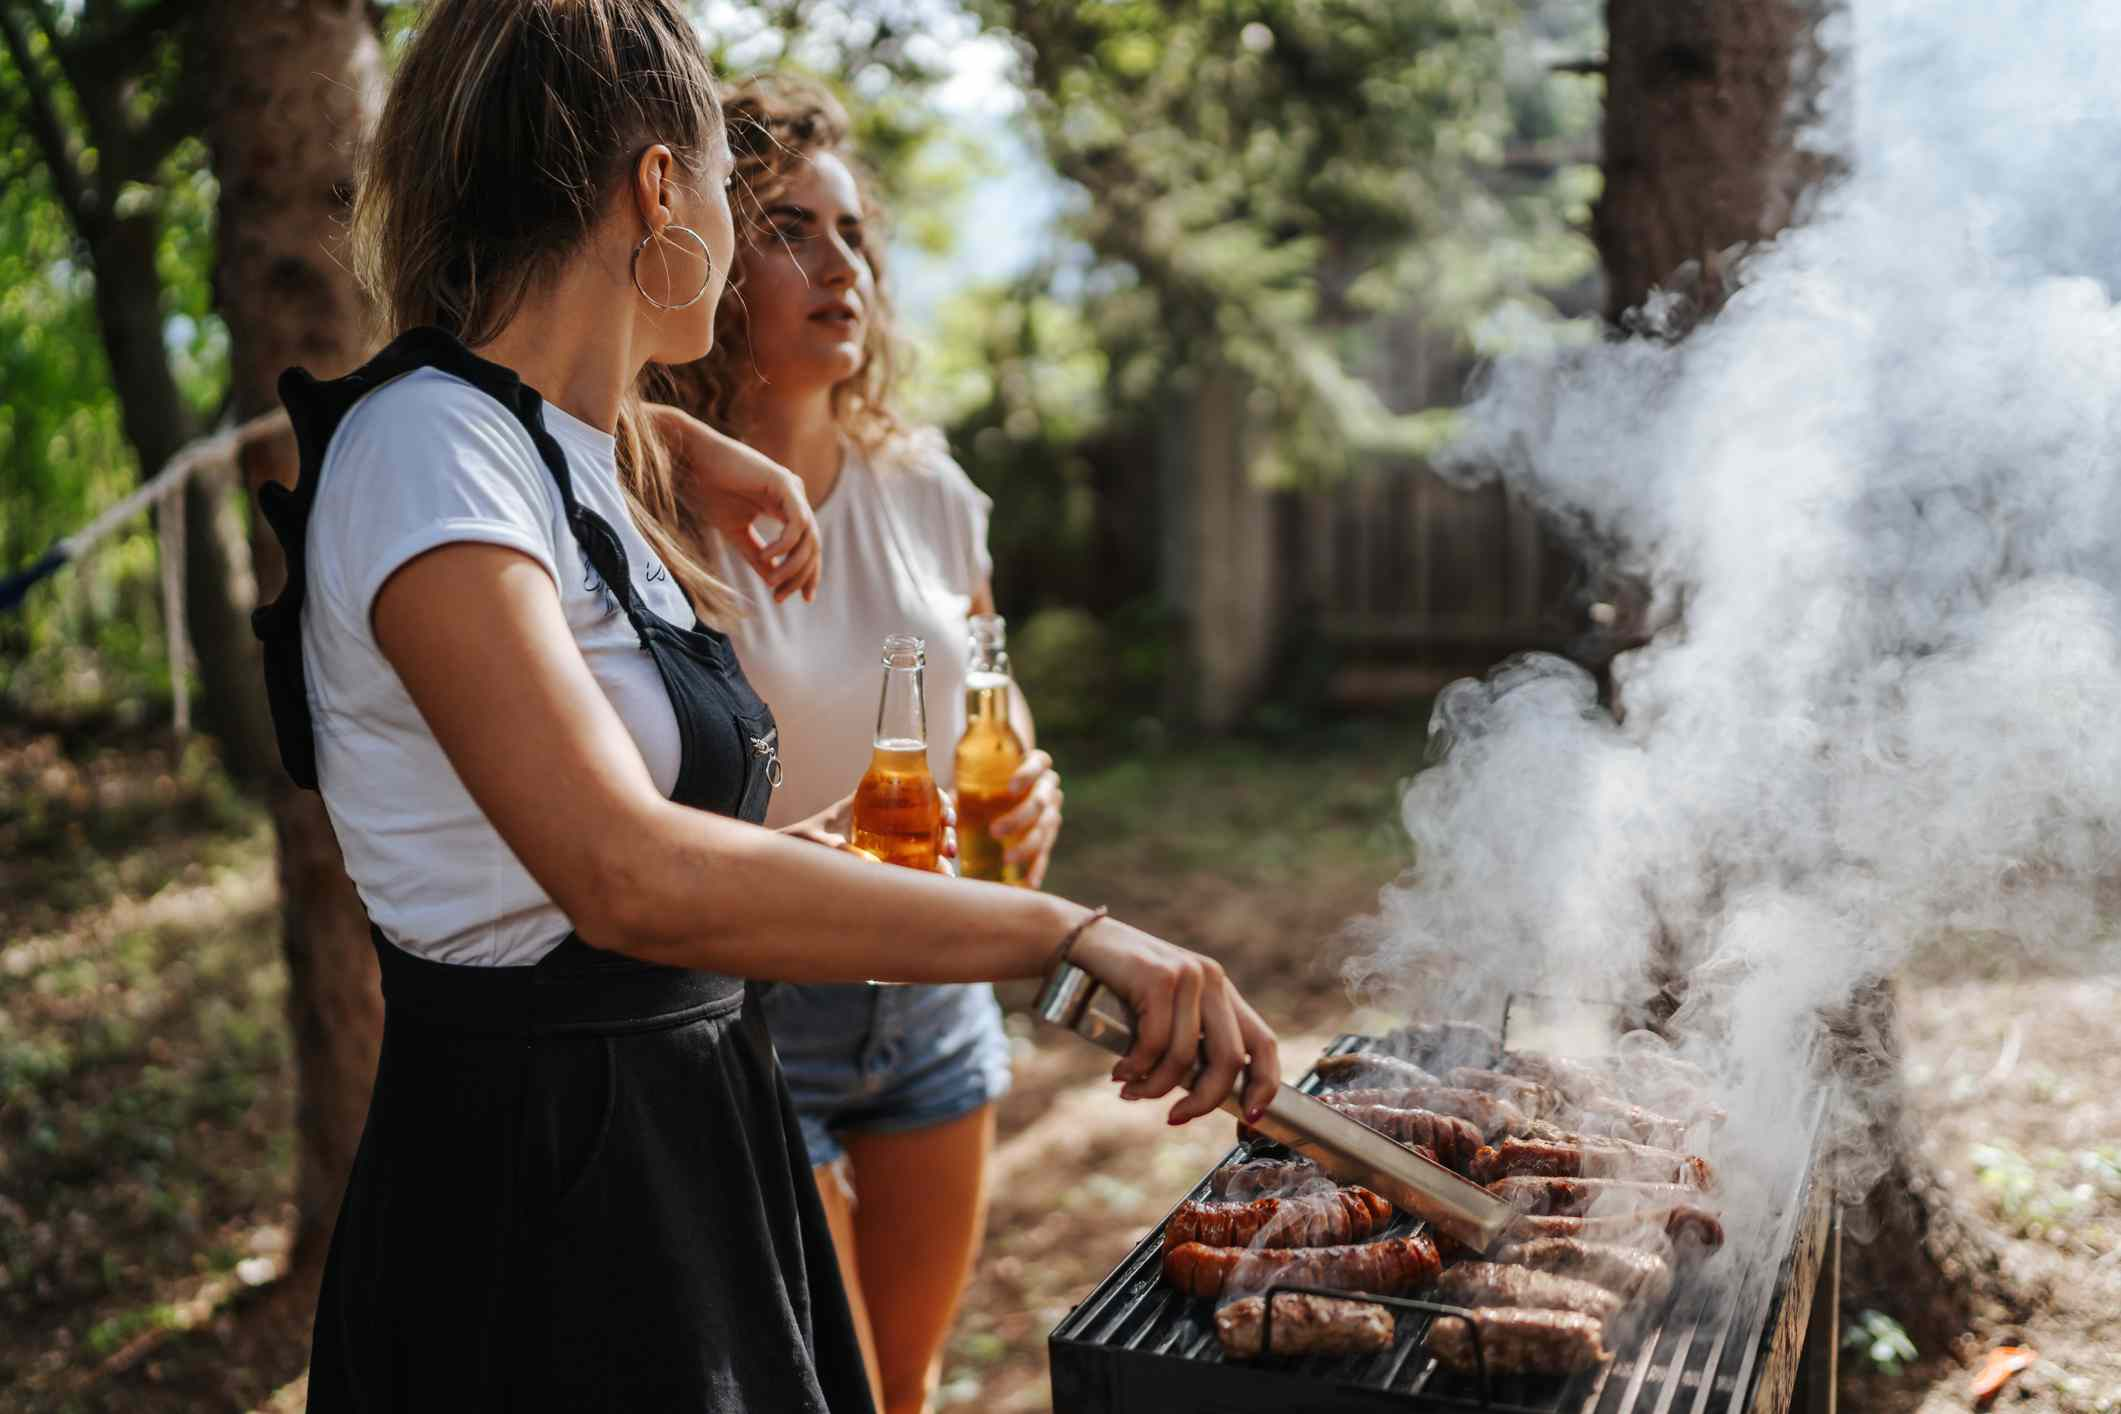 Two girls grilling and drinking beer